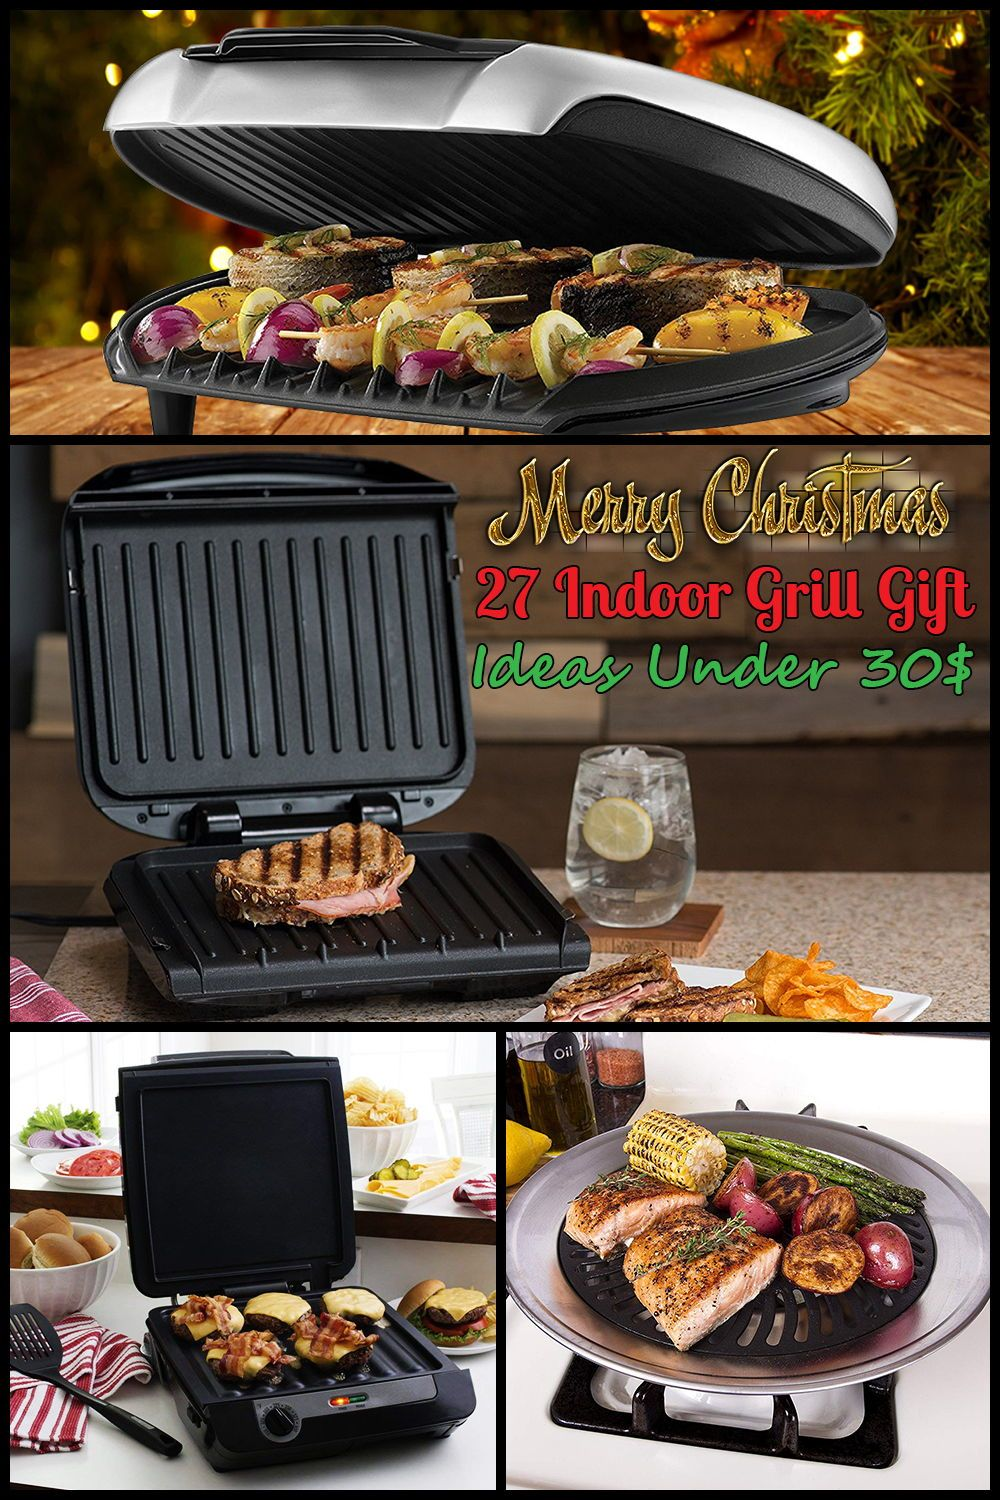 George Foreman 240 Indoor Outdoor Electric Grill Portable Home Bbq 15 Servings Georgeforeman Grilling Electric Grill Charcoal Grill